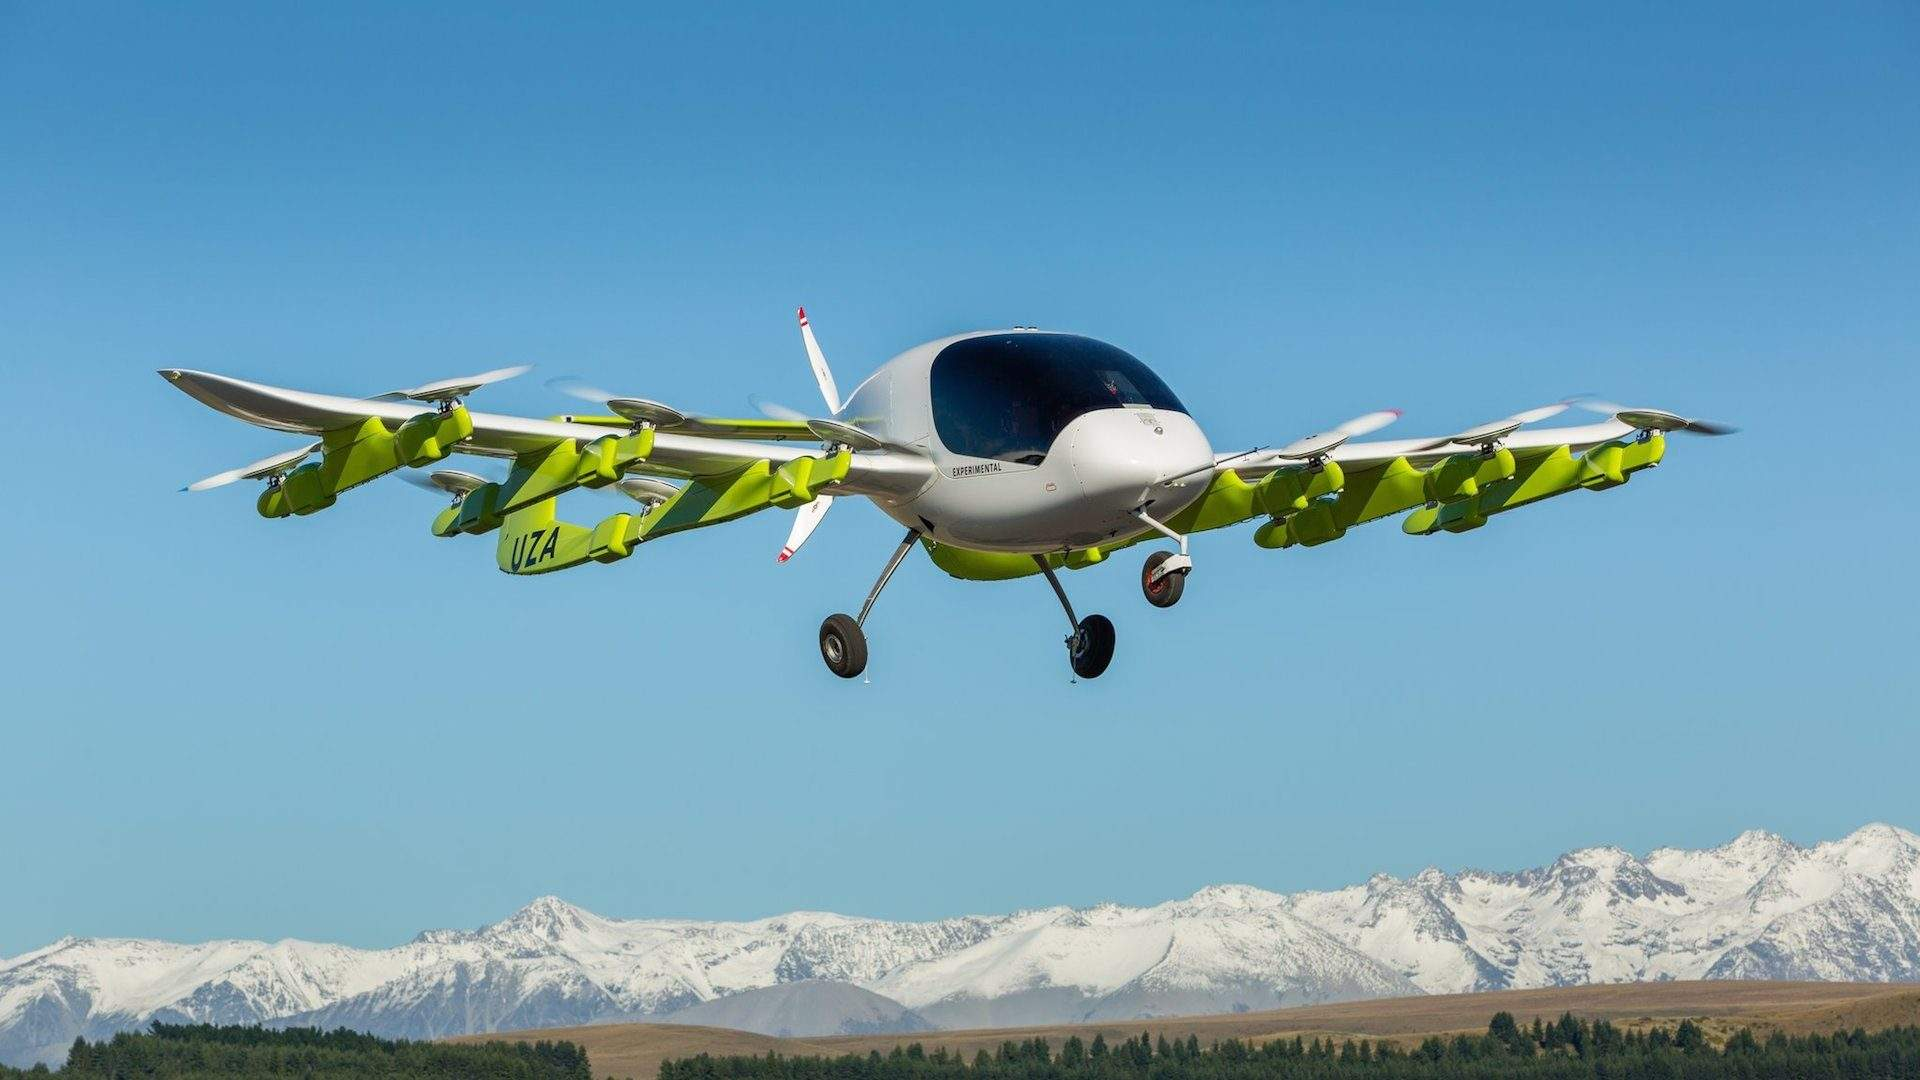 Google Co-Founder Larry Page Has Been Testing Flying Taxis in New Zealand